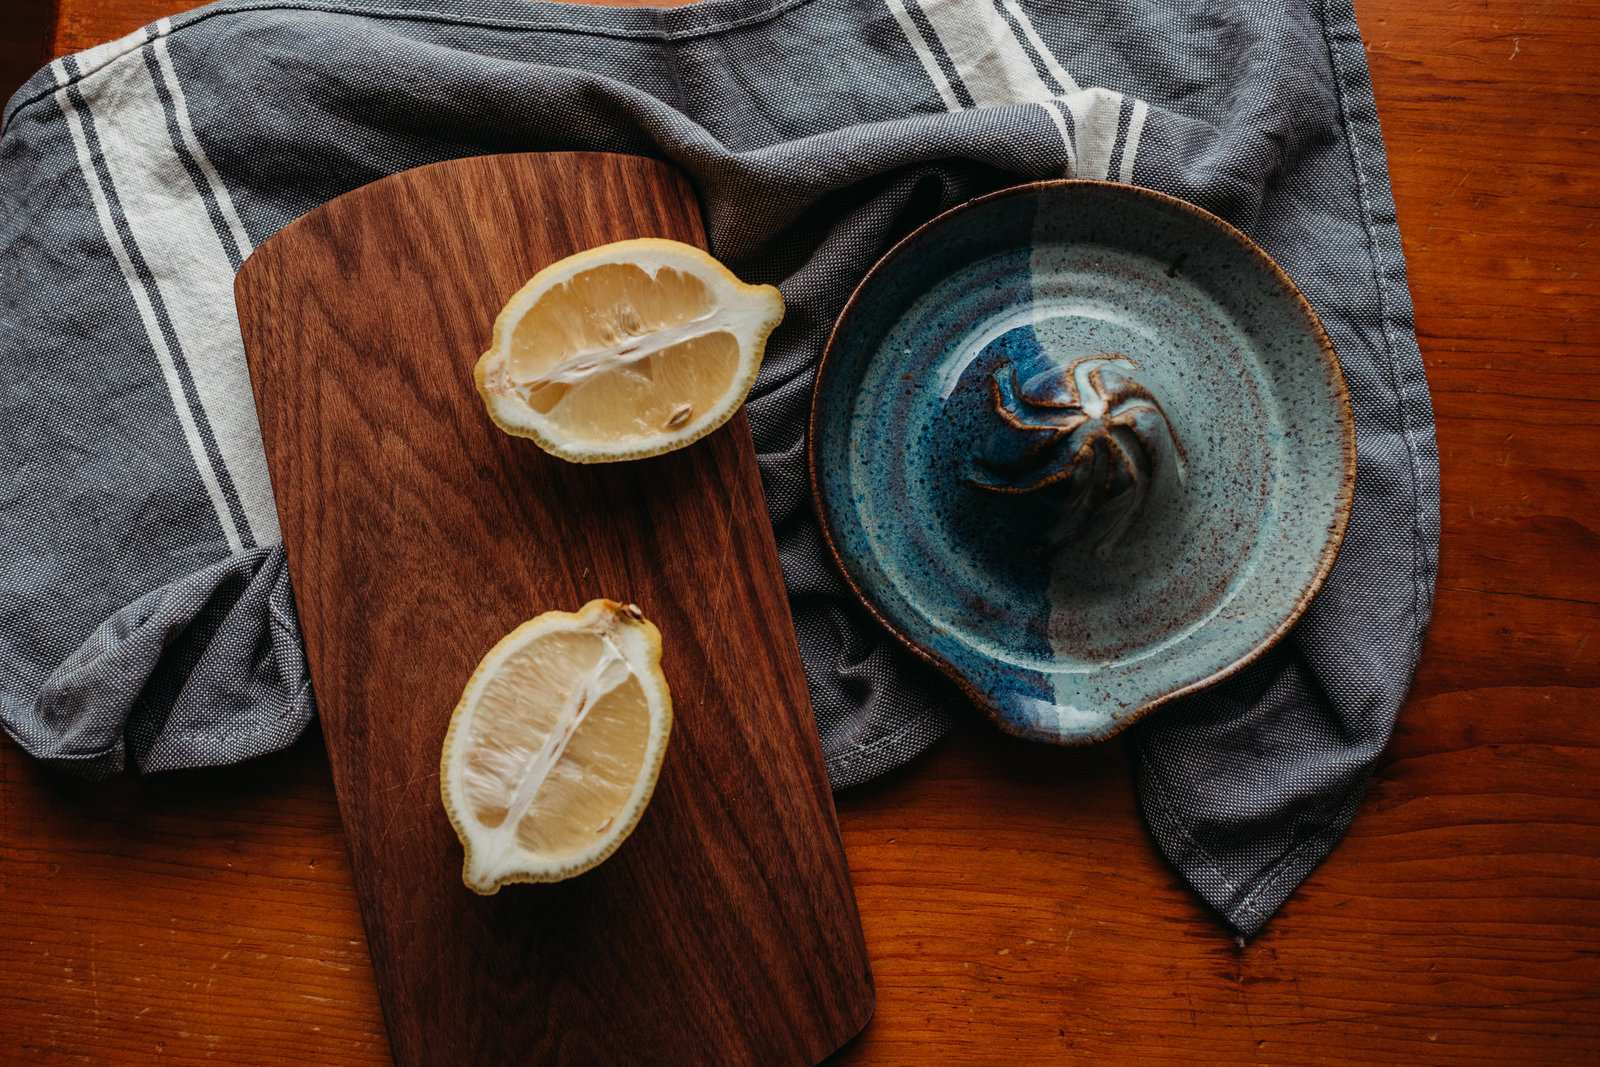 overhead shot of pottery citrus juicer next to lemons and a towel